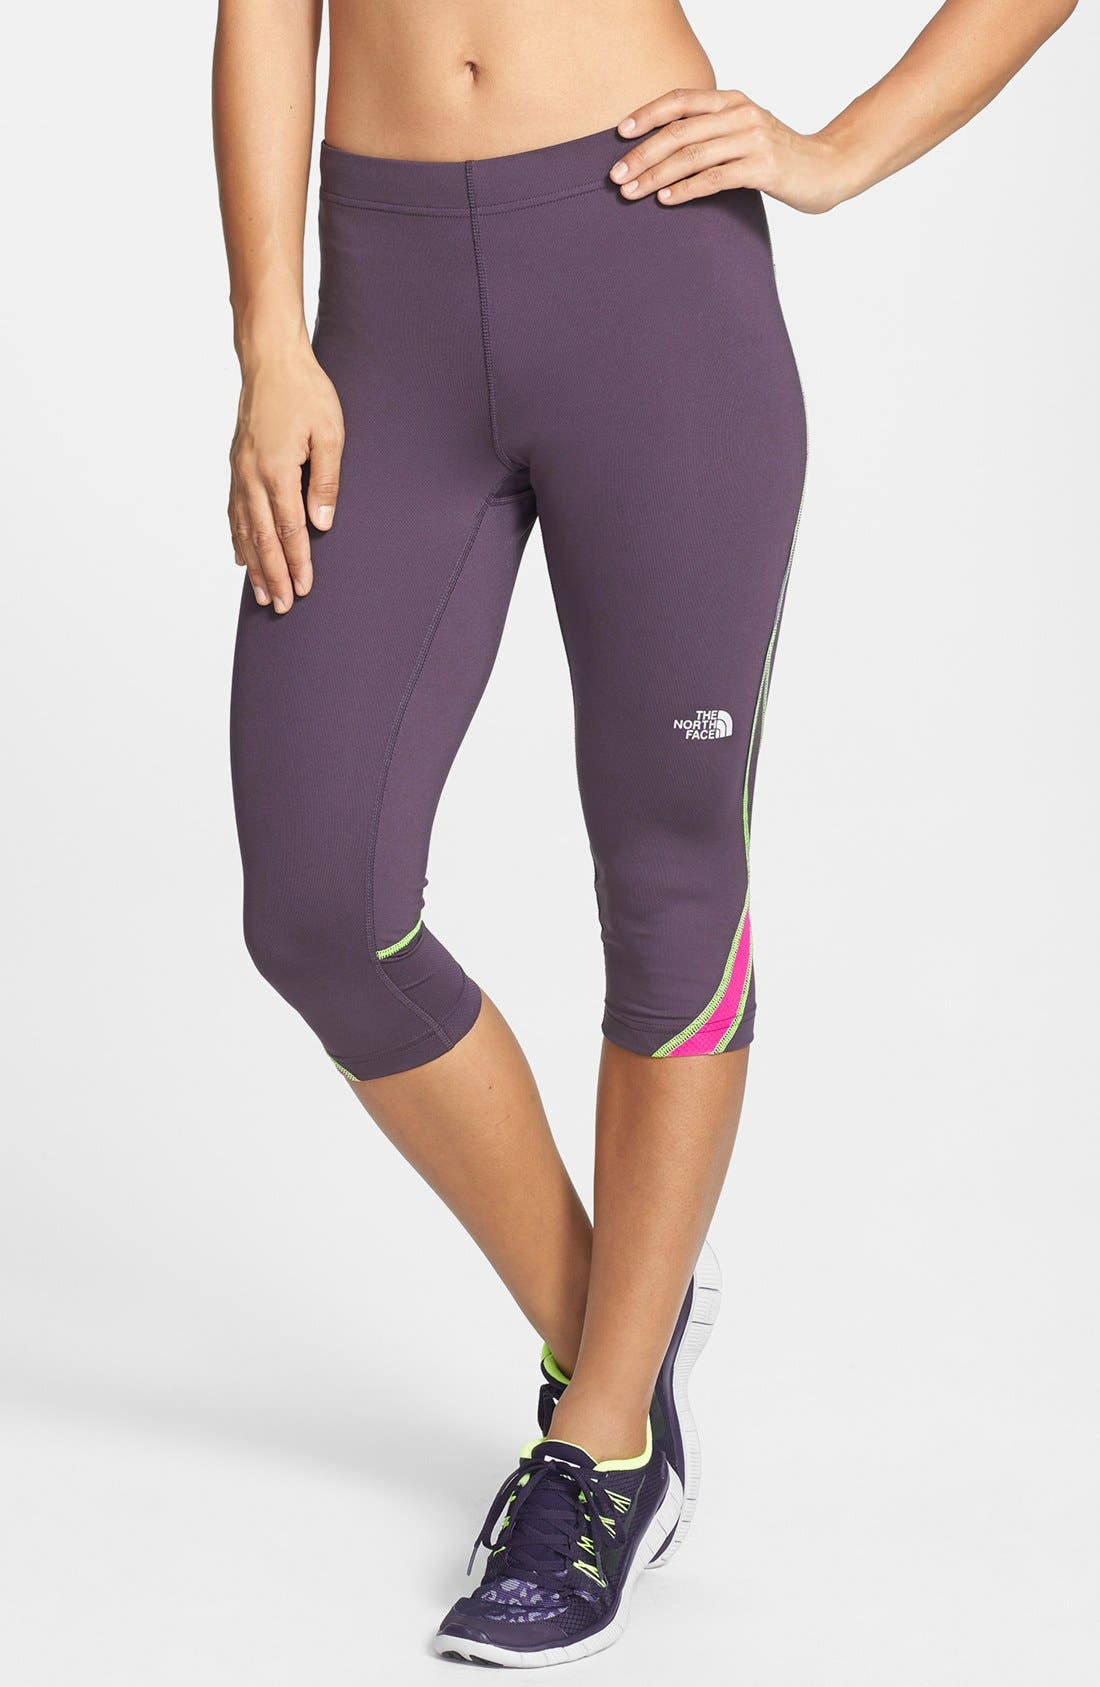 Alternate Image 1 Selected - The North Face 'GTD' VaporWick® Performance Capri Tights